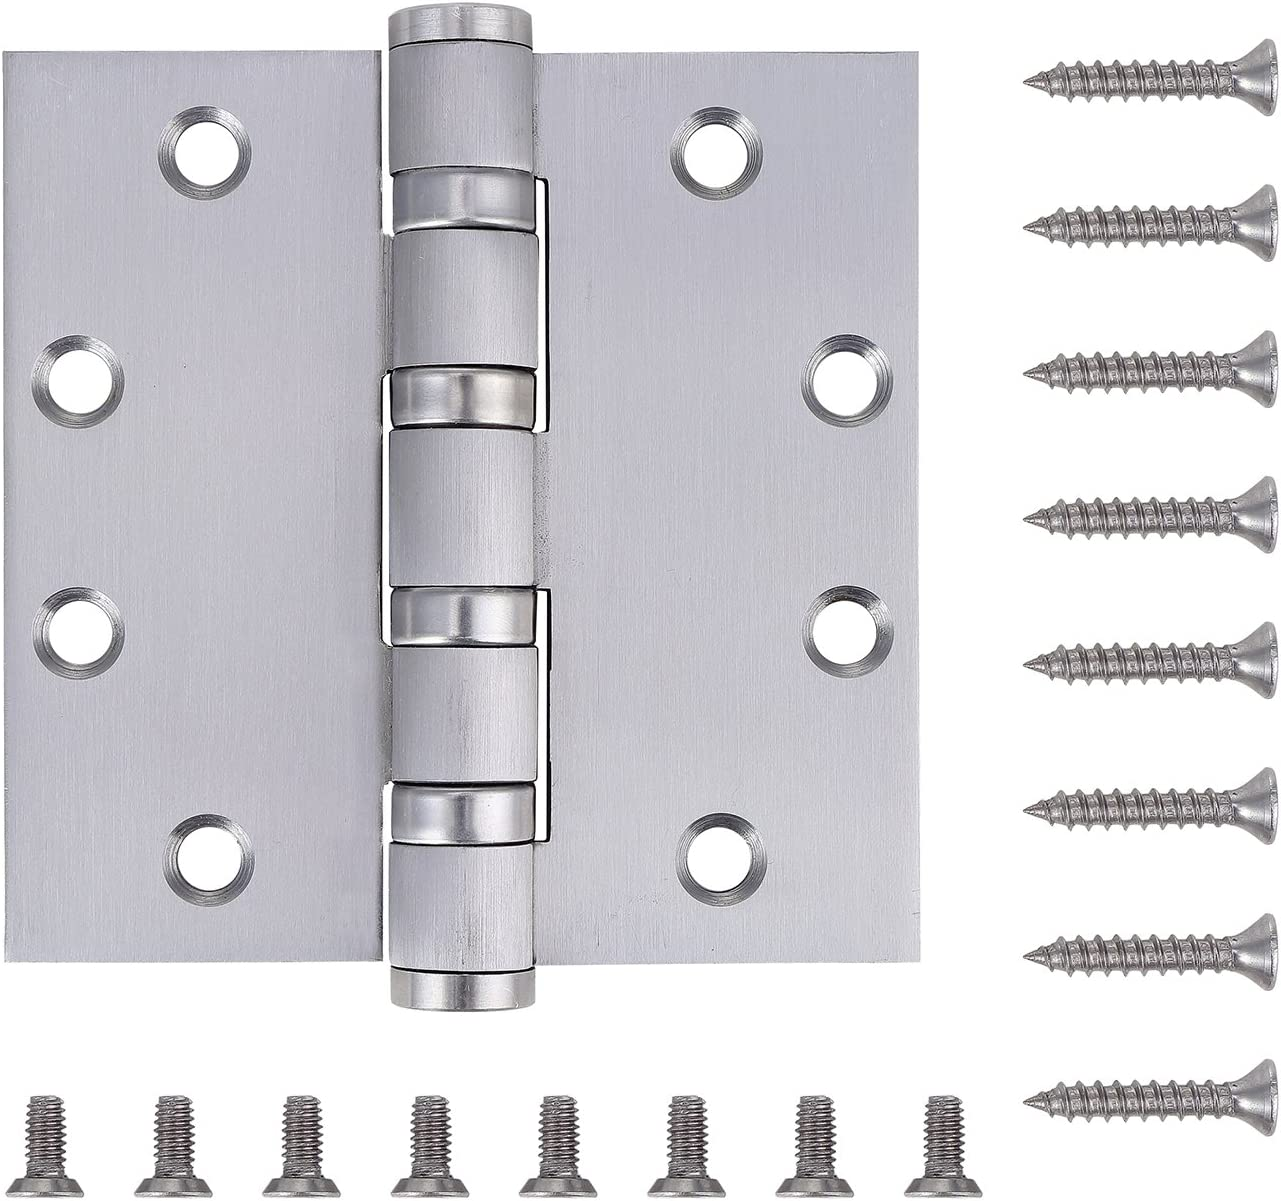 Pack of 3 - Commercial Door Hinge (Reversible) - 4.5 Inch - Heavy Duty Stainless Steel - 4 Bearing Heavy Weight - by Dependable Direct